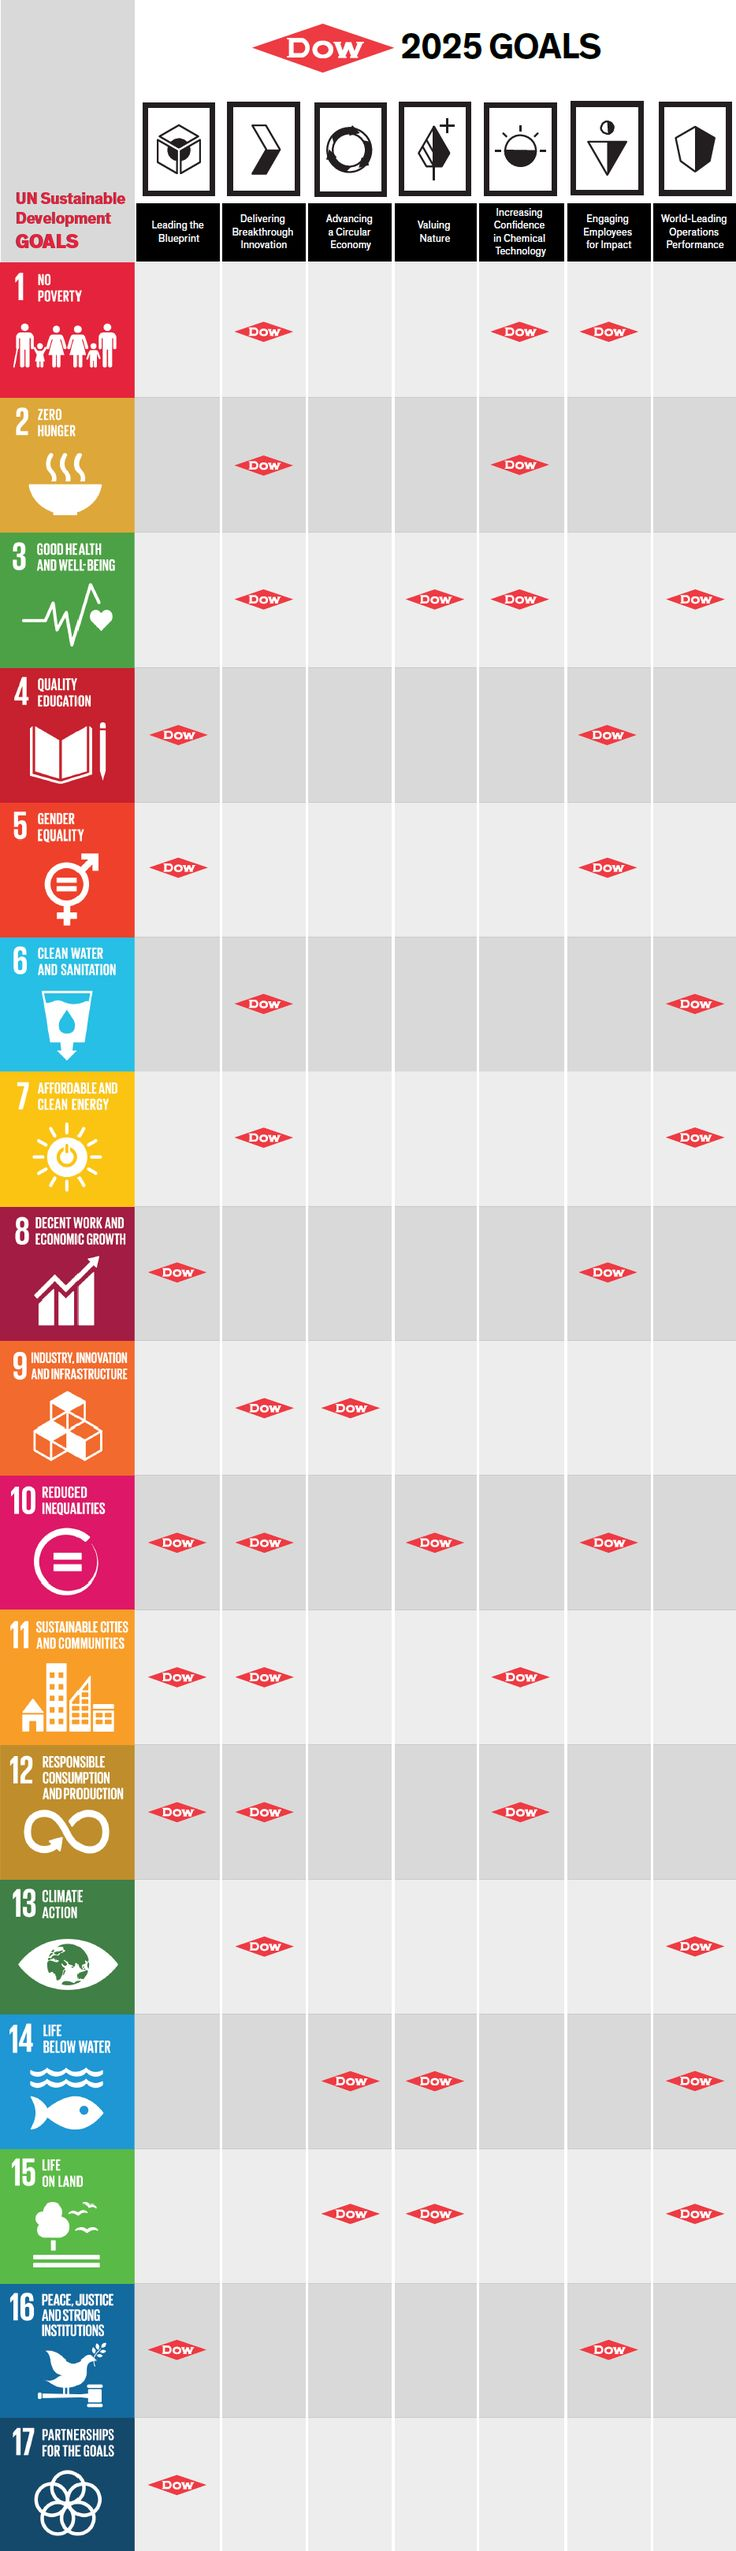 UN Sustainable Goals | Dow